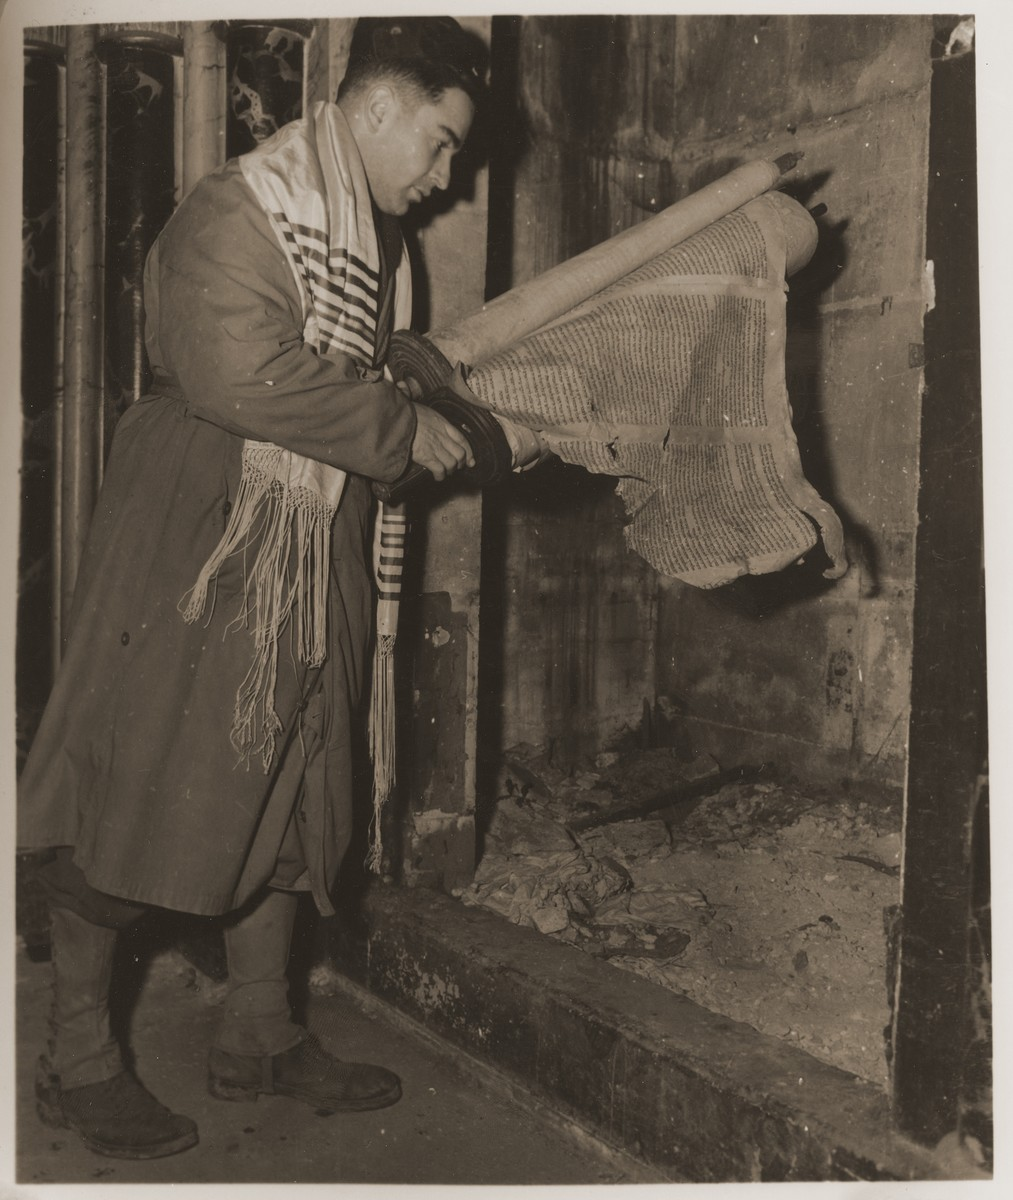 U.S. Army chaplain Herman Dicker from Brooklyn, N.Y., examines a damaged Torah scroll in the ark of the destroyed synagogue in Metz.